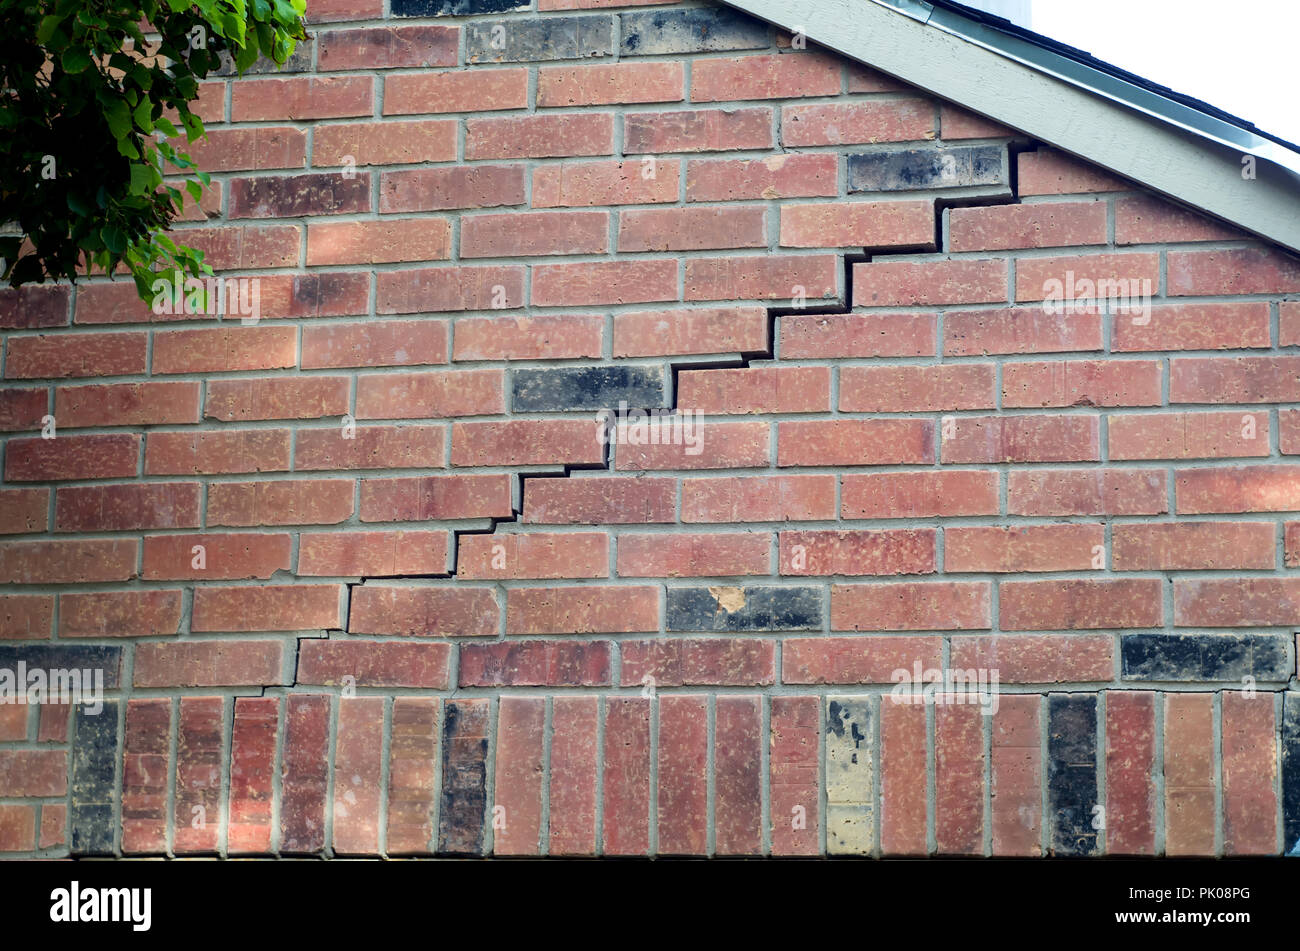 Brick and mortar separation on a red brick wall.This is typically due to a sinking foundation in a structure. - Stock Image